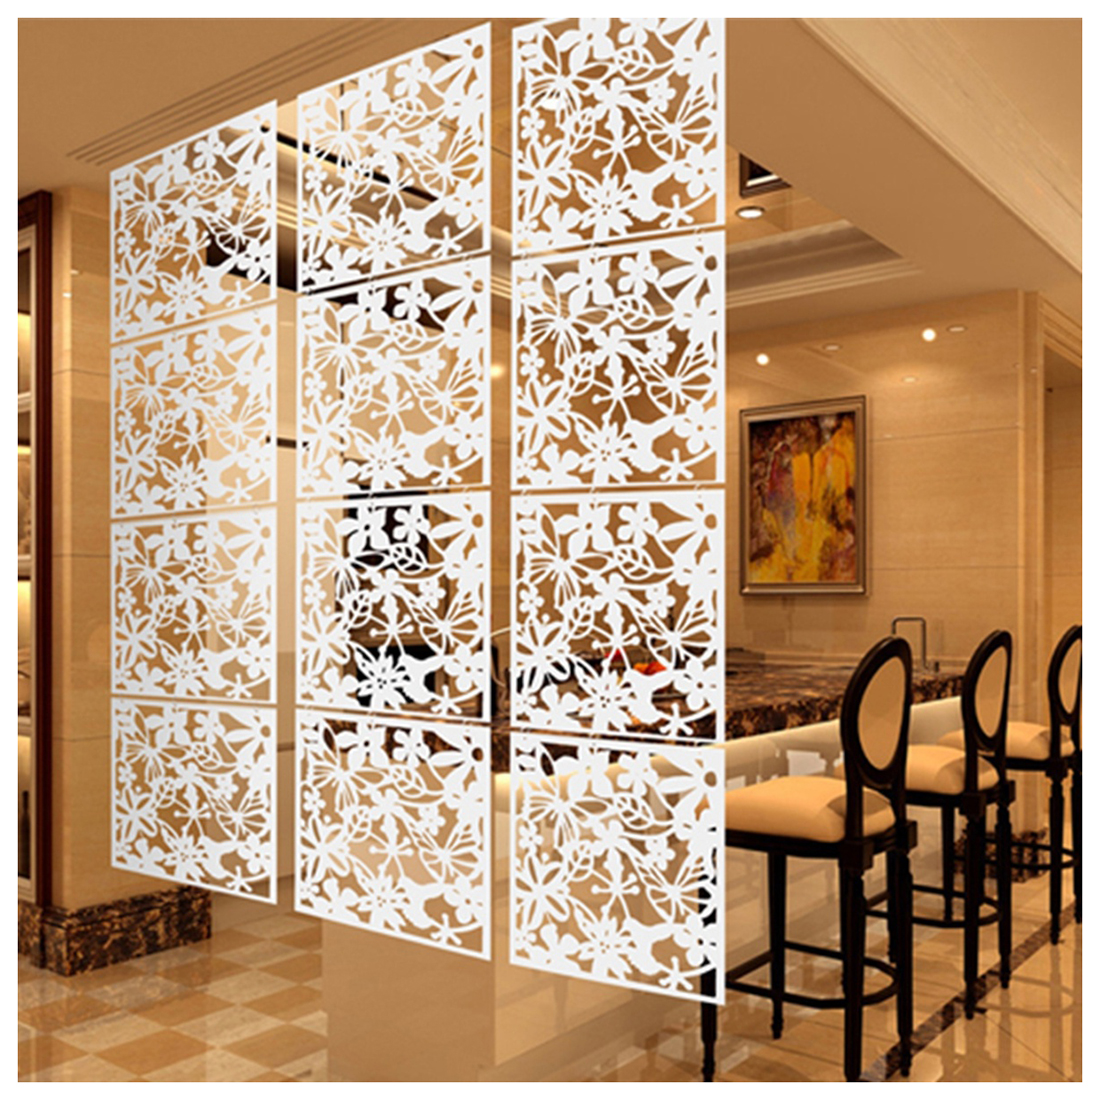 Best Fashion 4 Pcs Butterfly Bird Flower Hanging Screen Partition Divider Panel Room Curtain Home Decor White/Black/Red